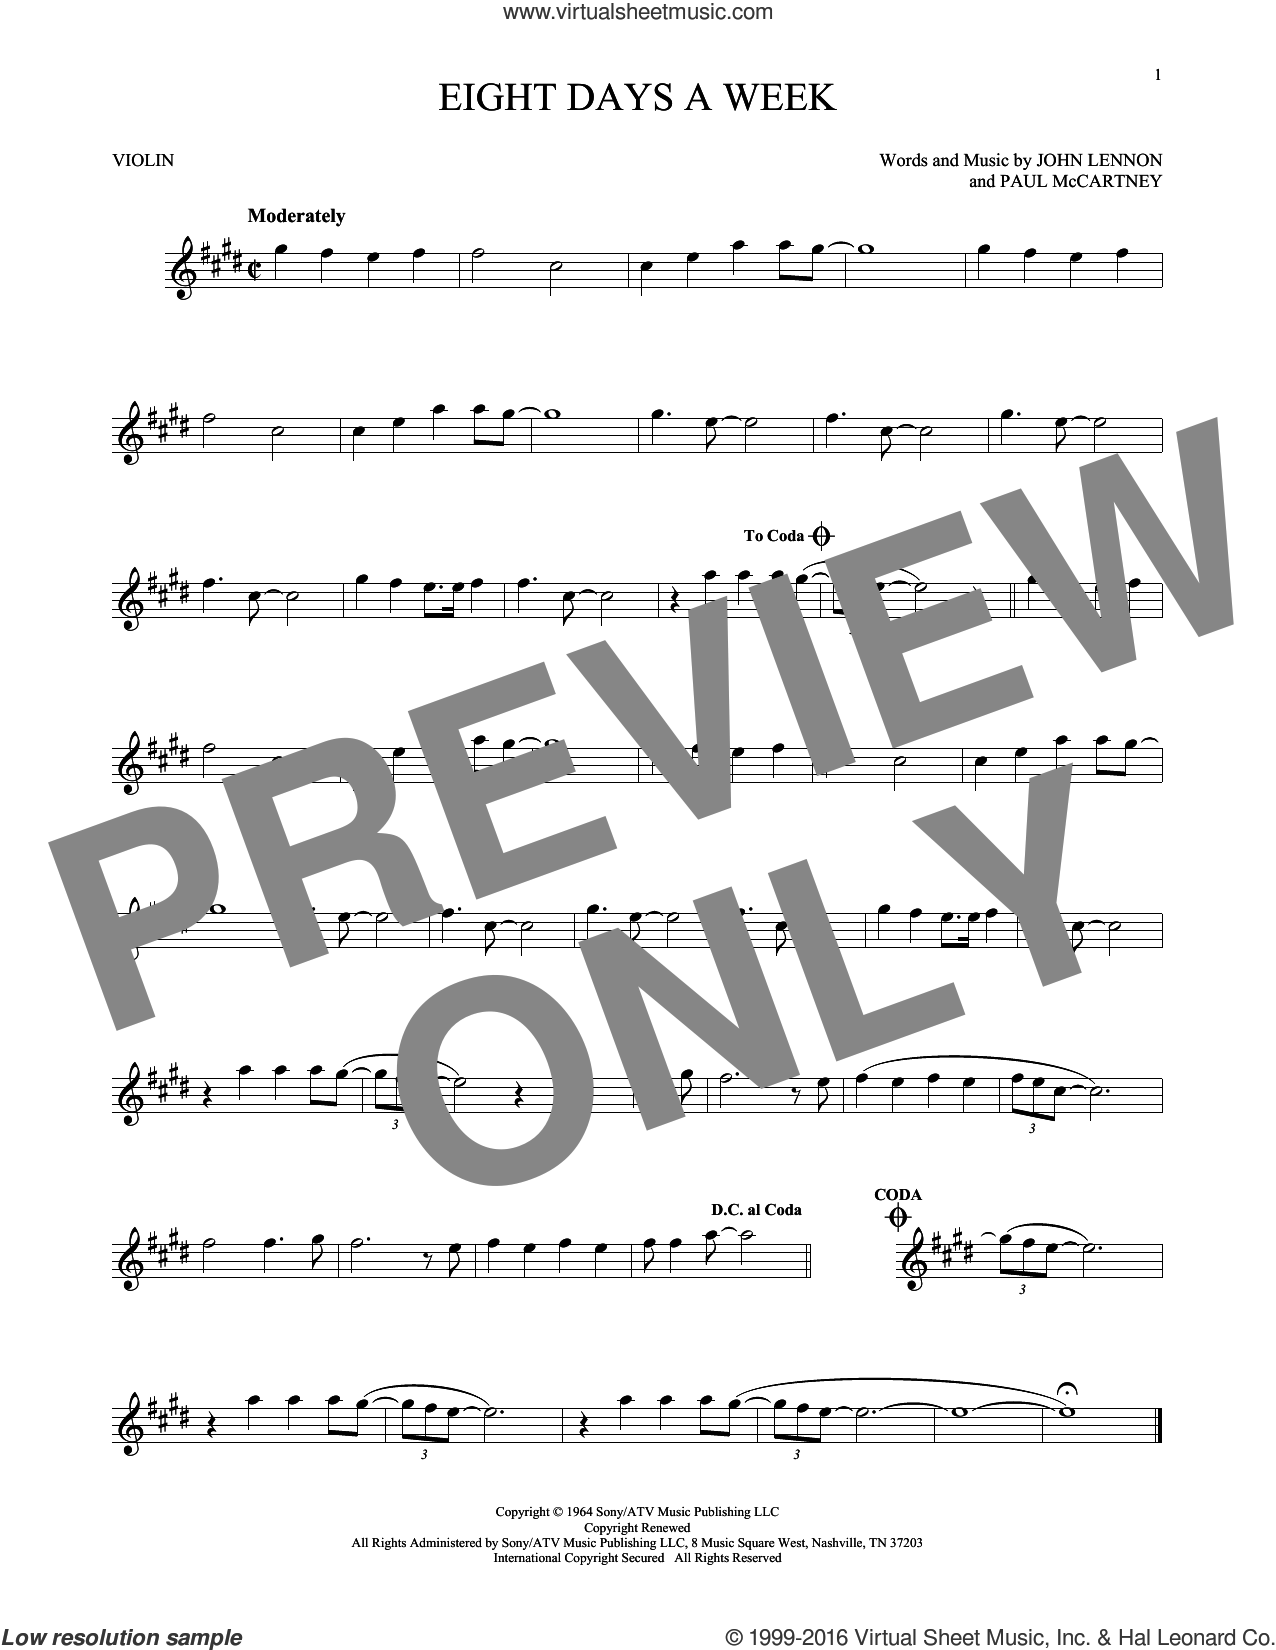 Eight Days A Week sheet music for violin solo by The Beatles, John Lennon and Paul McCartney, intermediate skill level